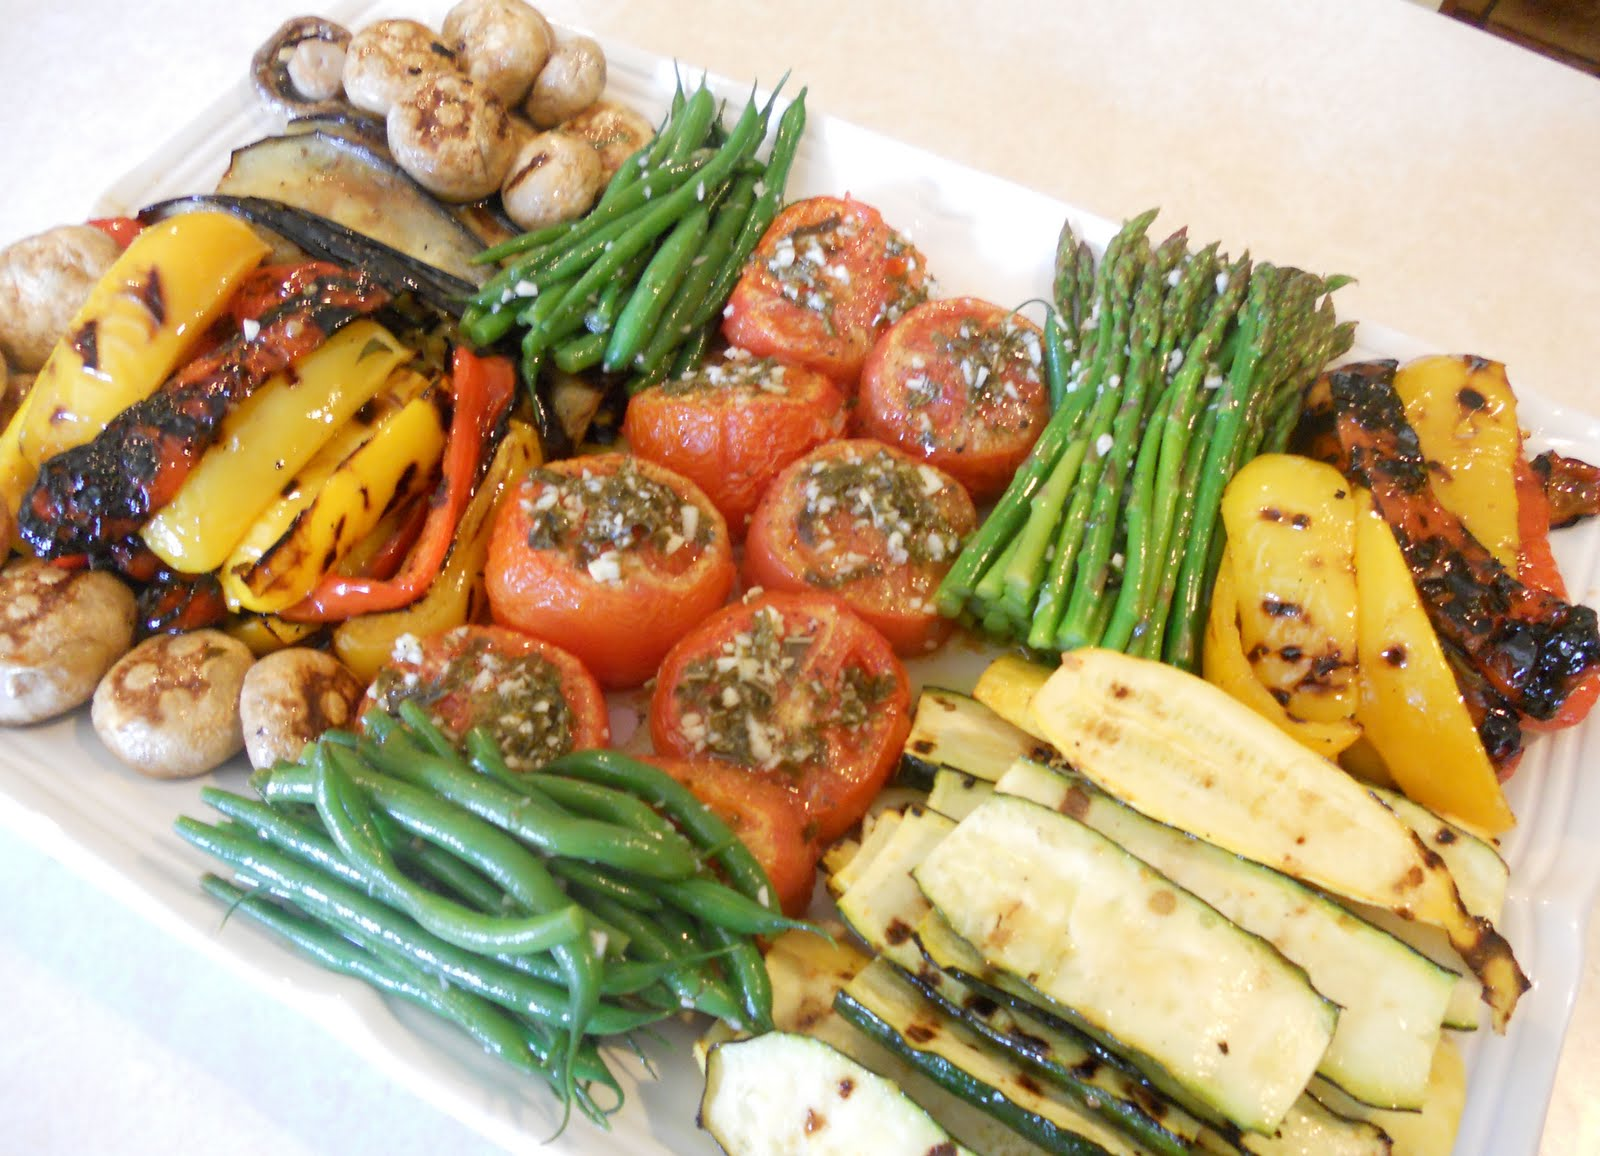 Cooked Vegetables Room Temperature